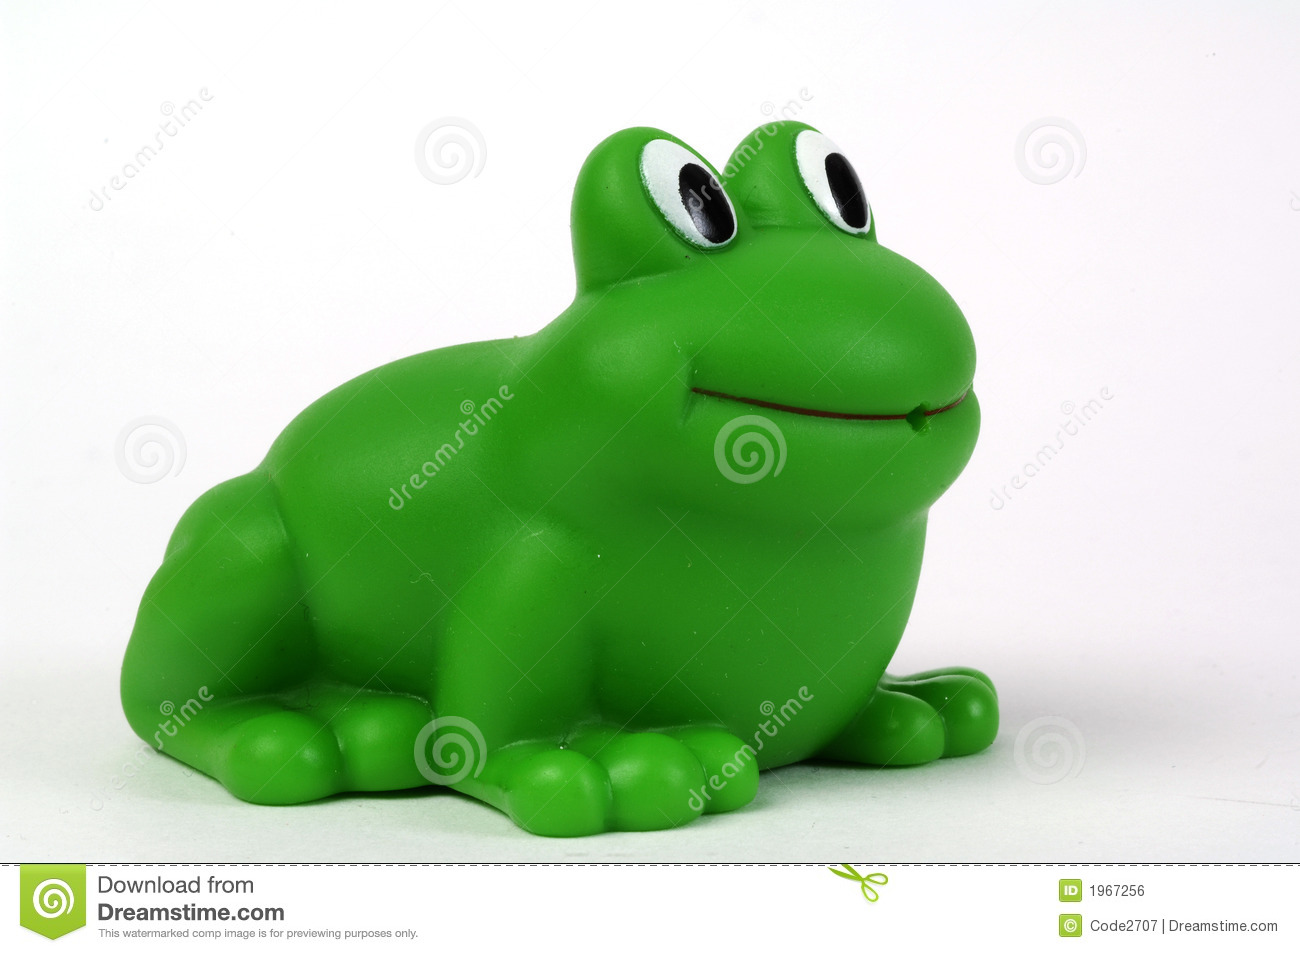 Green Plastic Frog Royalty Free Stock Image Image 1967256